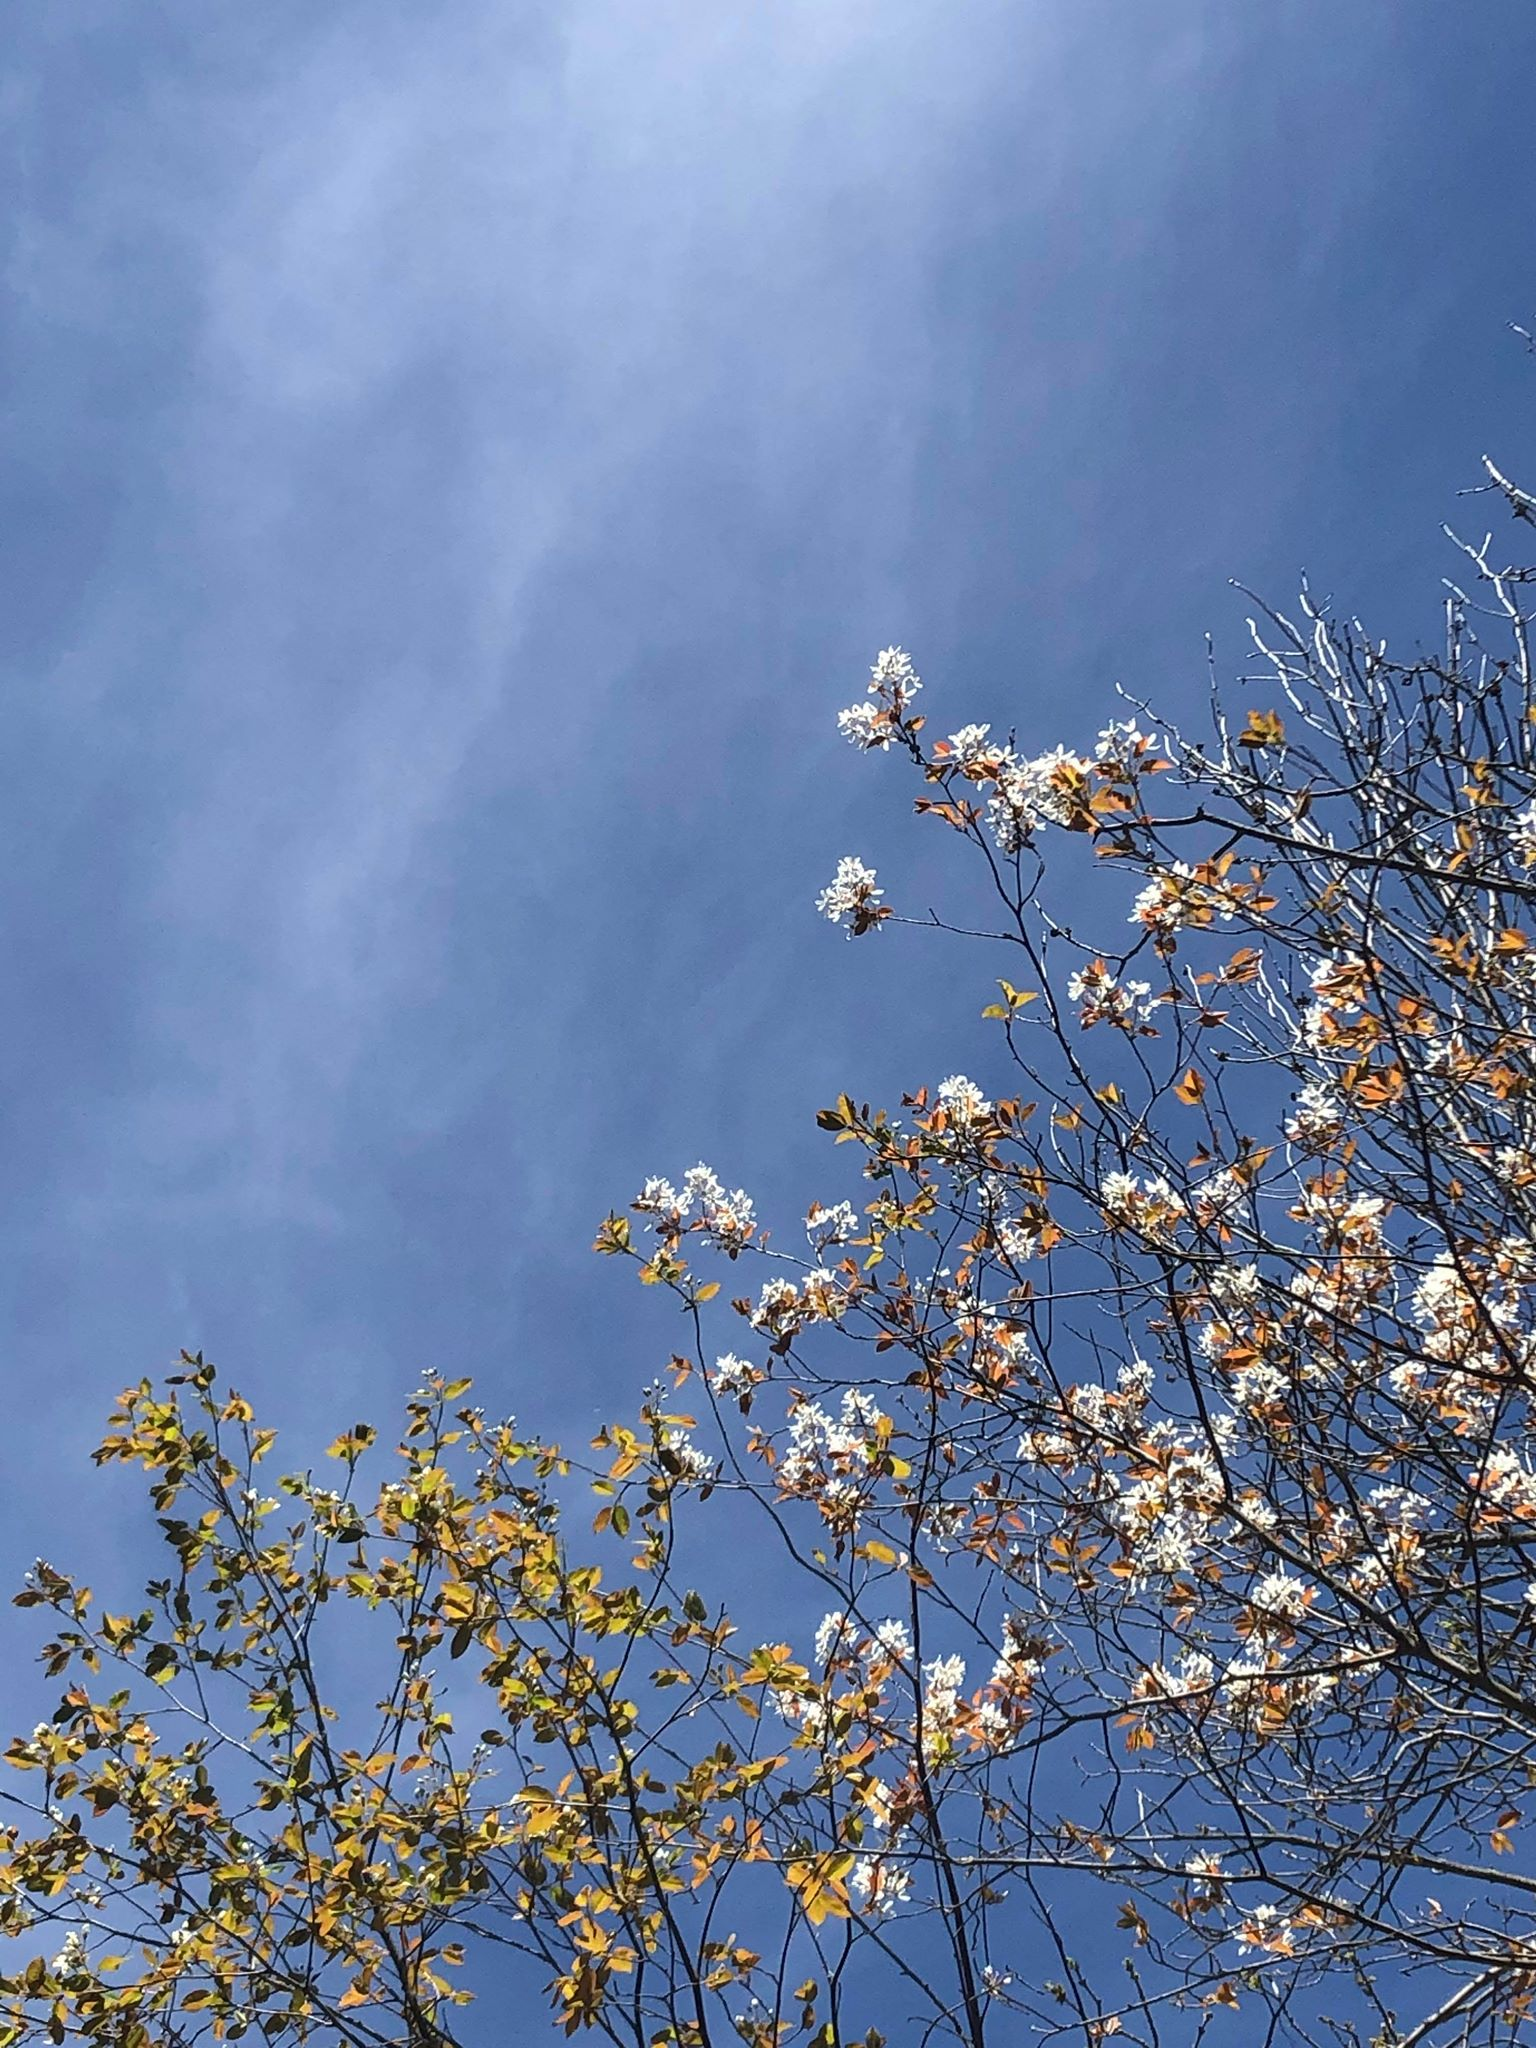 blue skies with spring buds